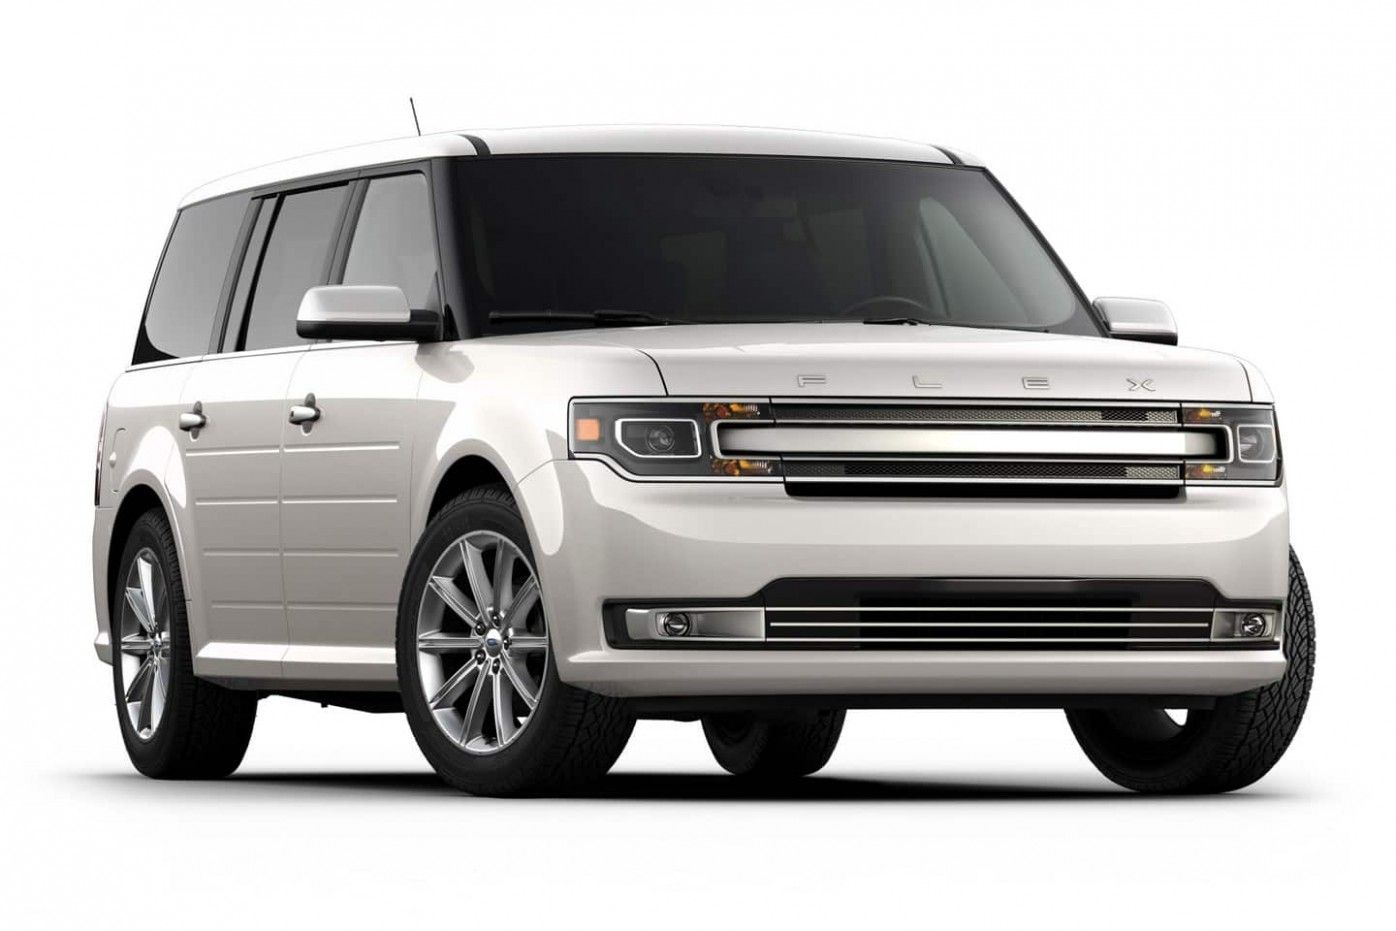 The Story Of 2020 Ford Flex S Design Has Just Gone Viral The Story Of 2020 Ford Flex S Design Has Just Gone Viral 2 Ford Flex Ford Flex Interior Suv Models